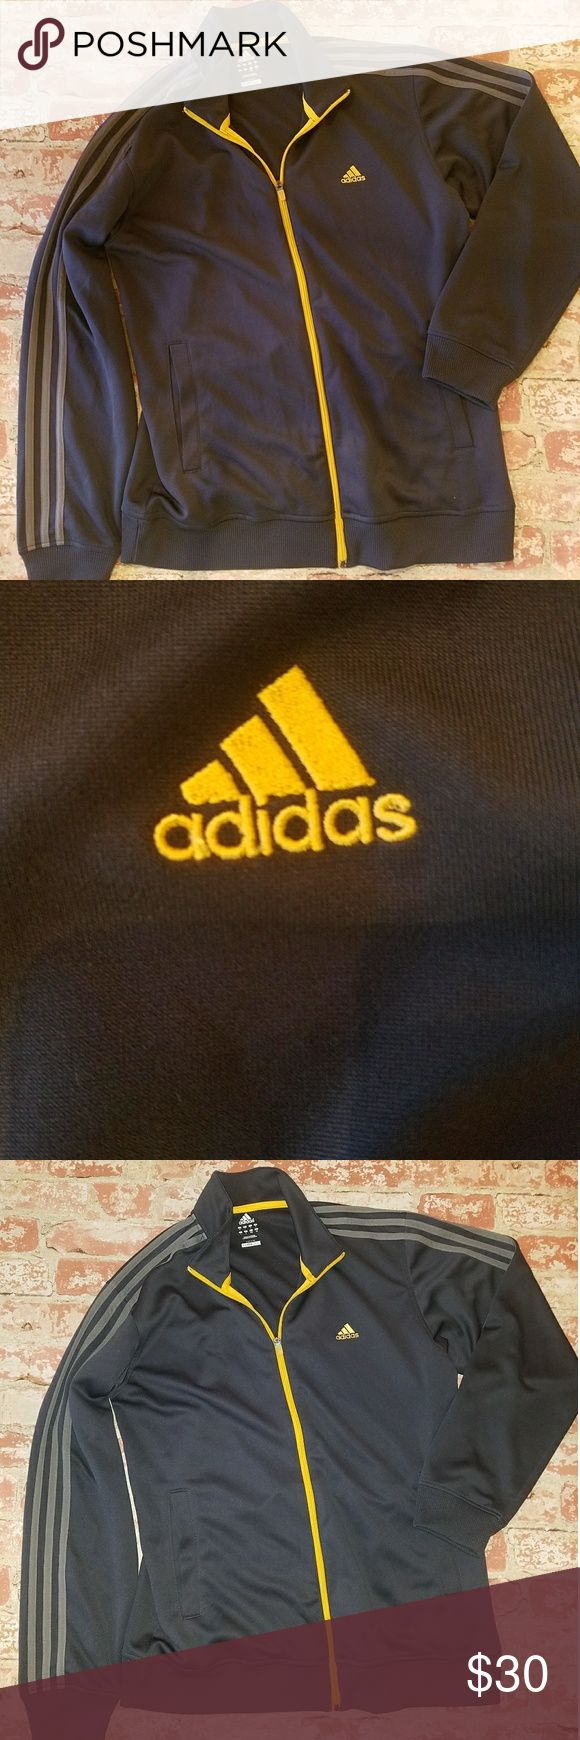 "Adidas zip up jacket Adidas clima365 zip up jacket Classic style with three stripe Dark gray almost looks blue Gray strips Yellow gold trim Excellent condition Size L 22"" across chest laying flat  28"" long adidas Jackets & Coats"